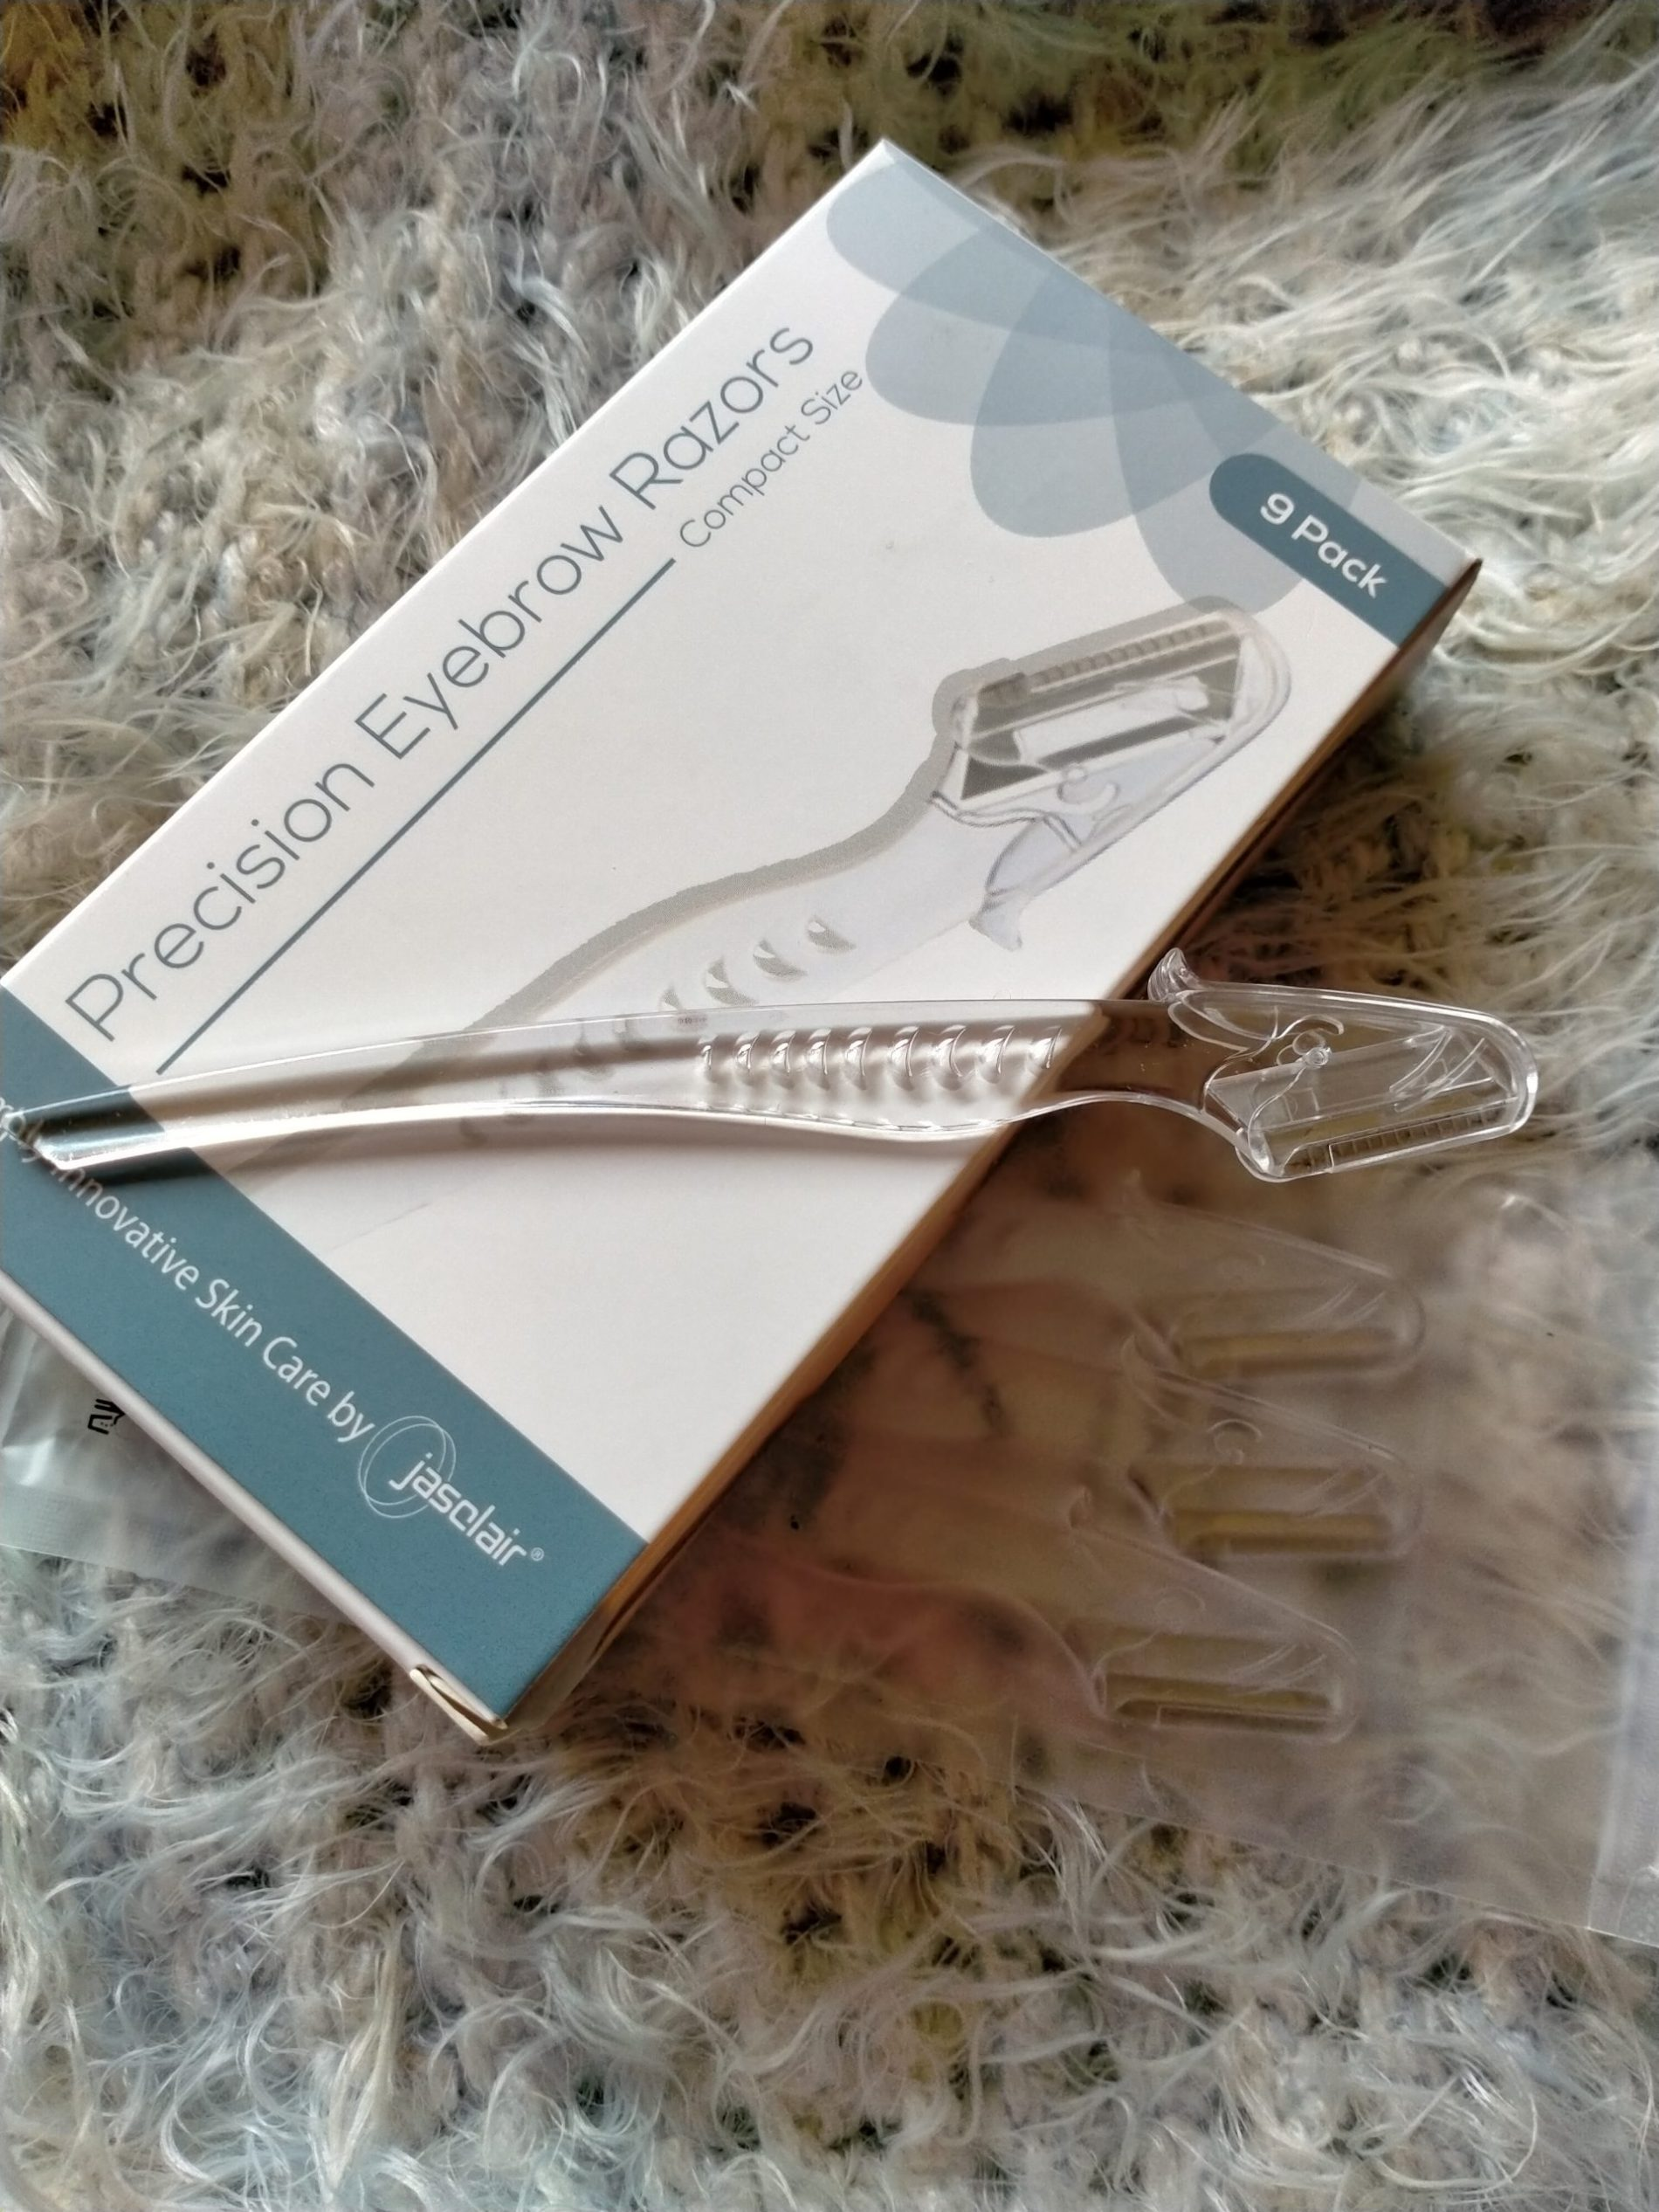 How to Trim & Shape Your Eyebrows at Home {Reviewing Jasclair's Touch-up Eyebrow Razor}